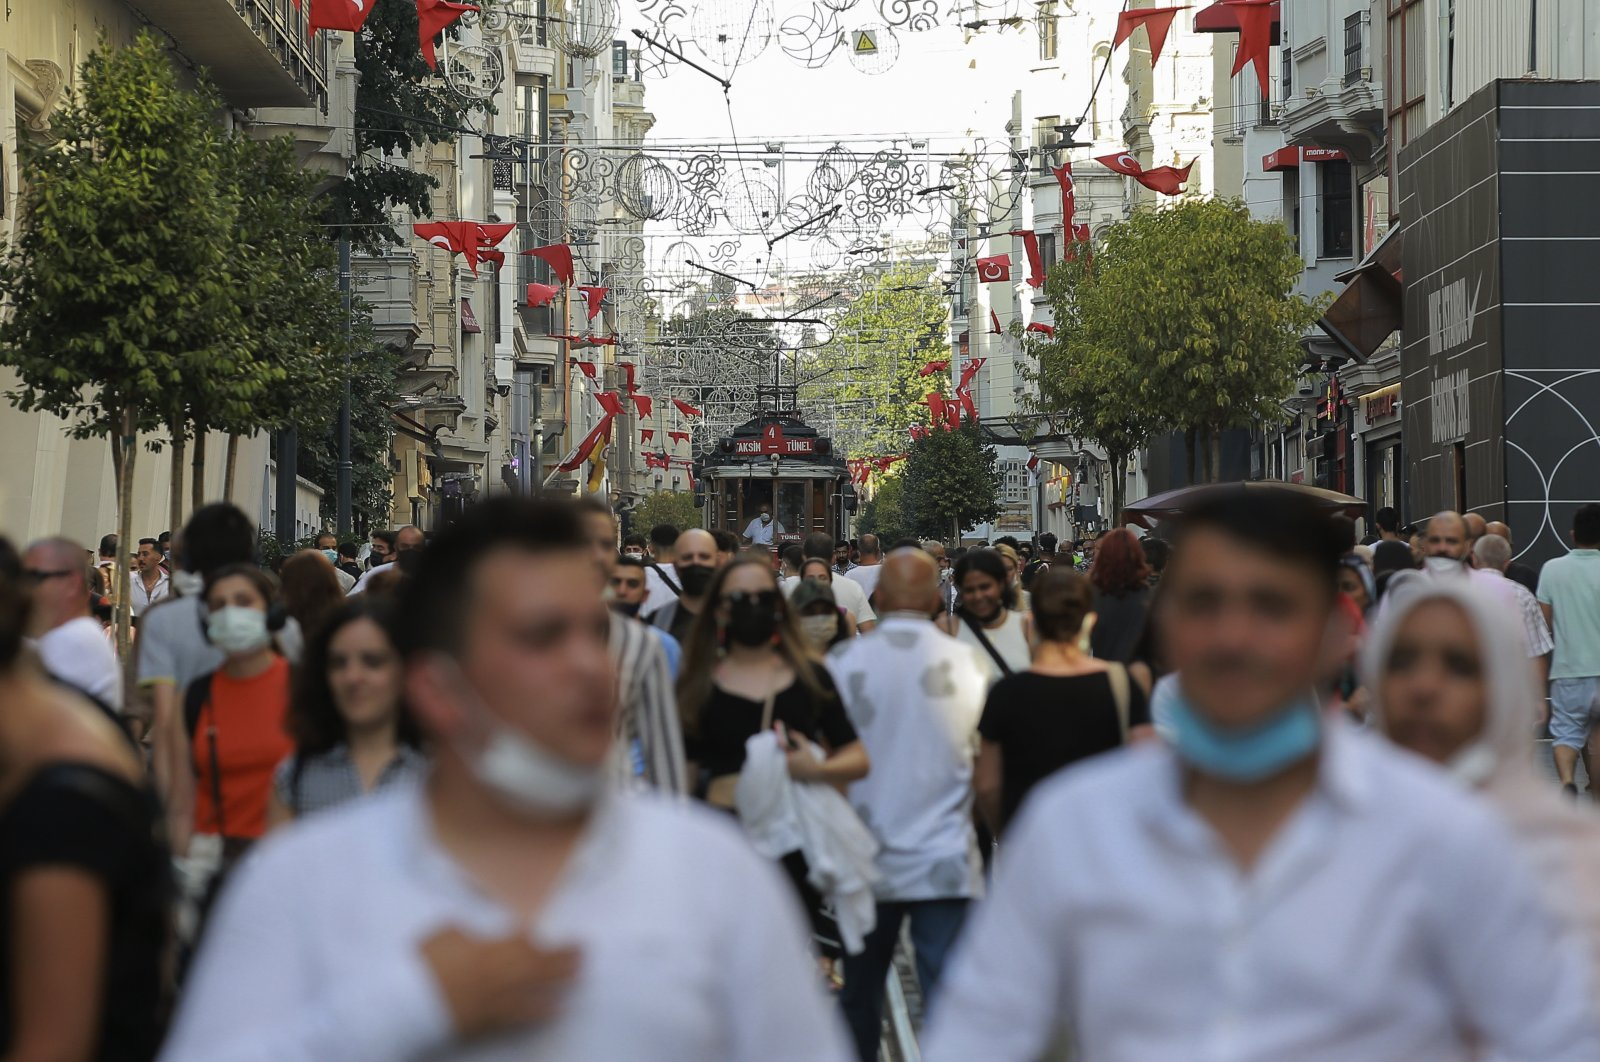 Turkish economy rebounds with record 21.7% growth in Q2